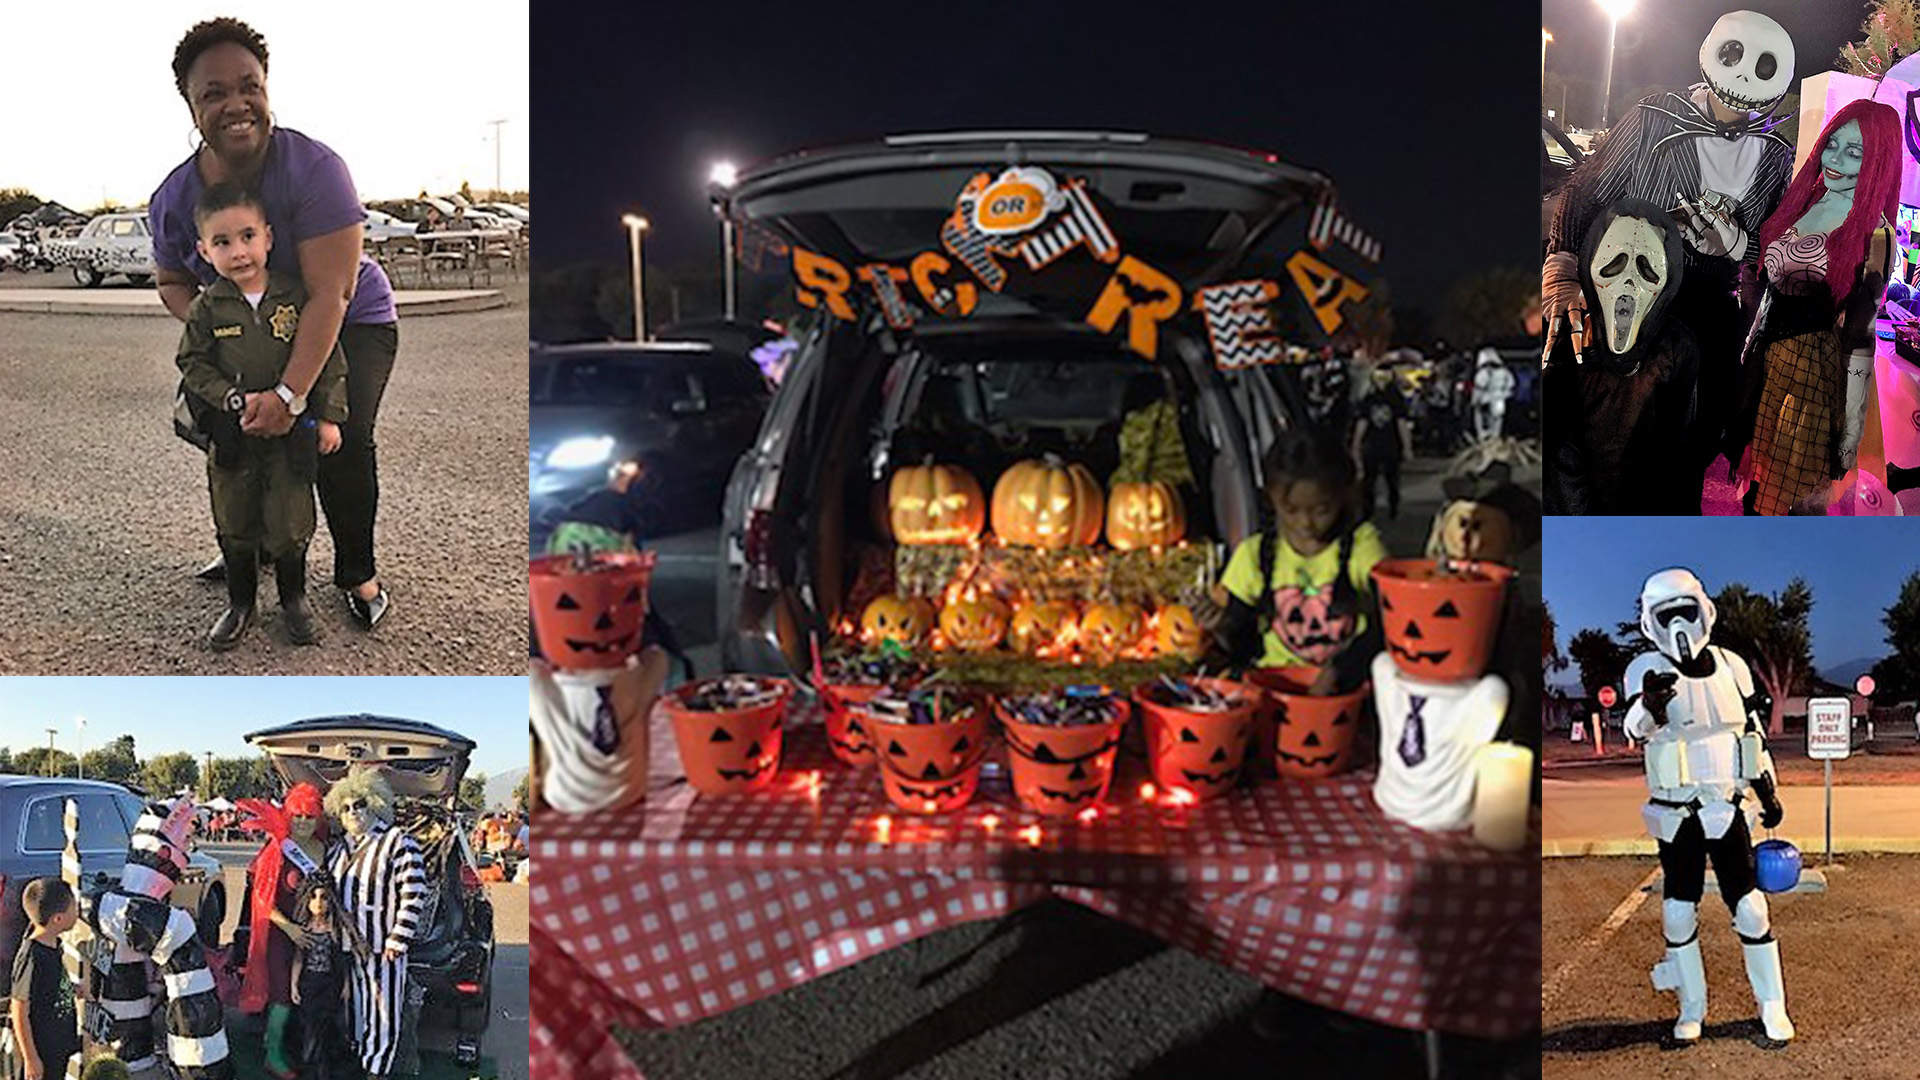 Halloween costumes, decorations and an open car trunk full of treats.